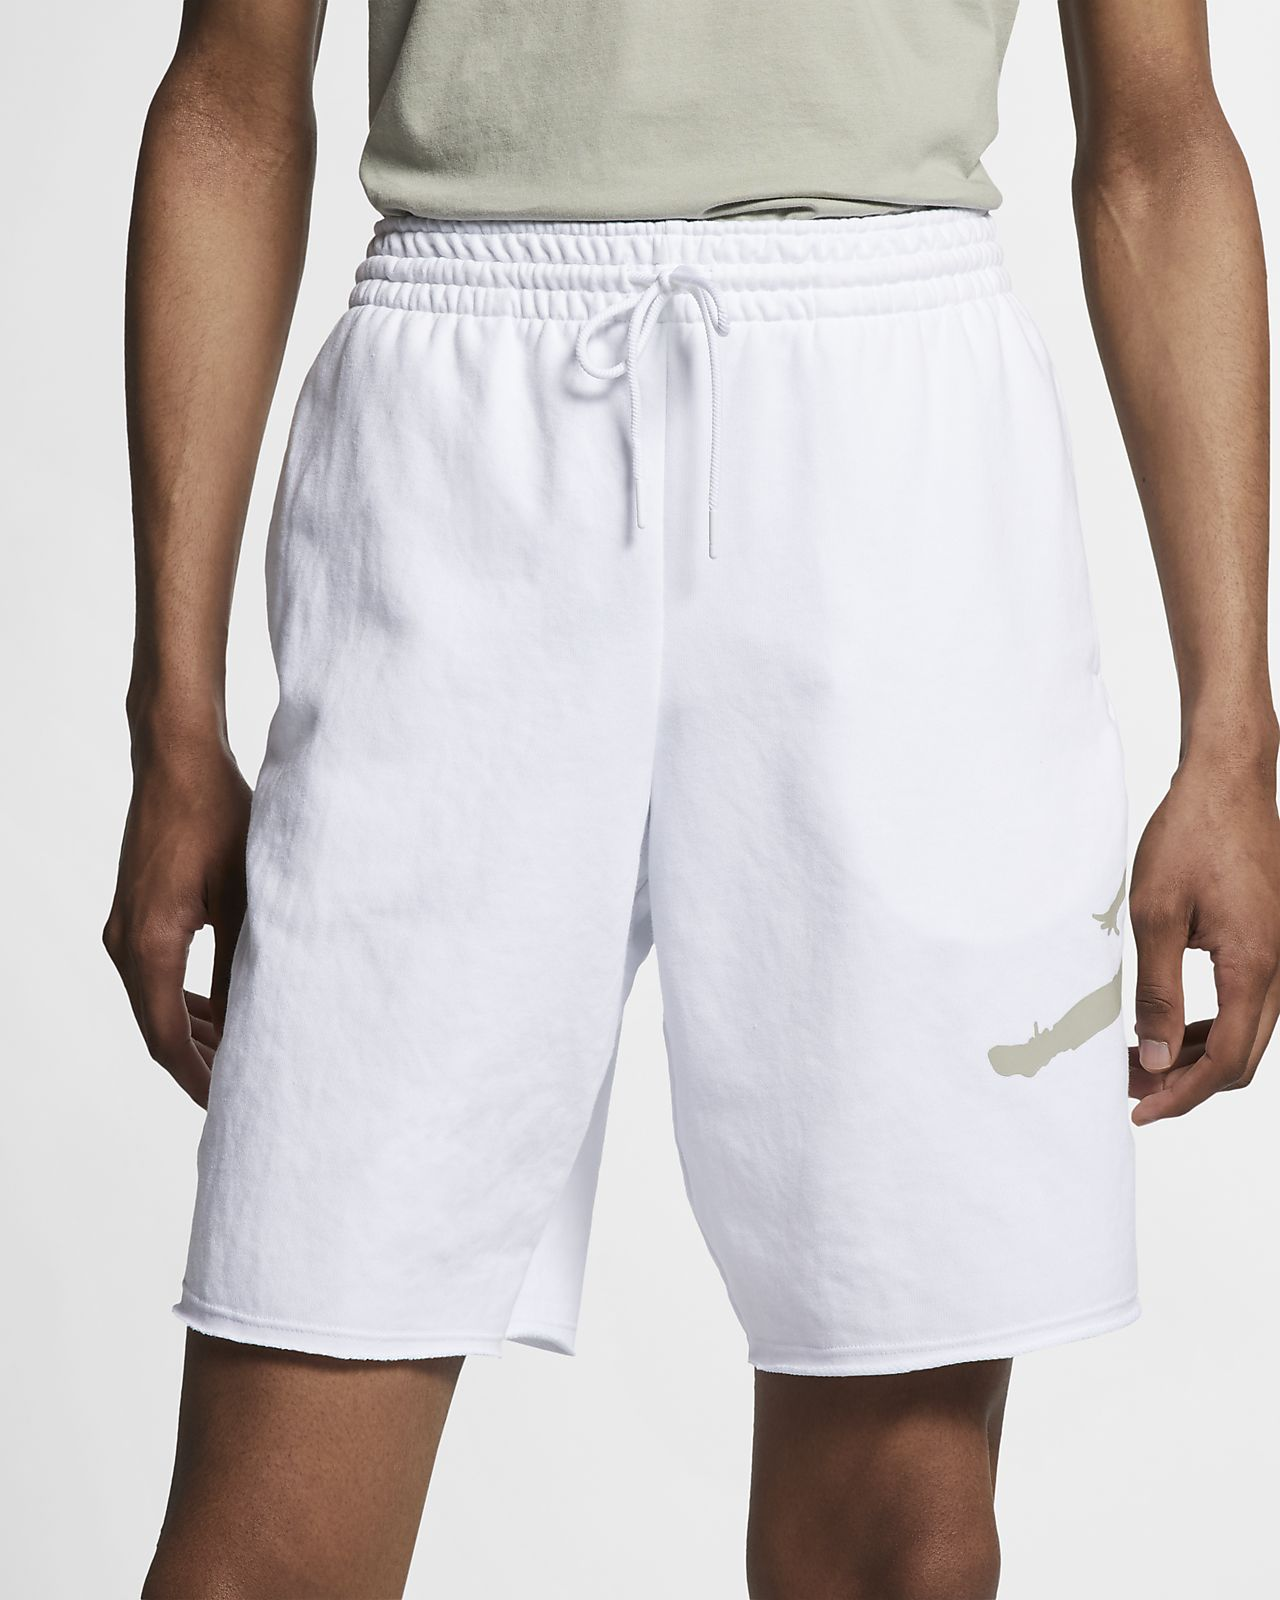 59493f9ced7 Jordan Jumpman Logo Men's Fleece Shorts. Nike.com